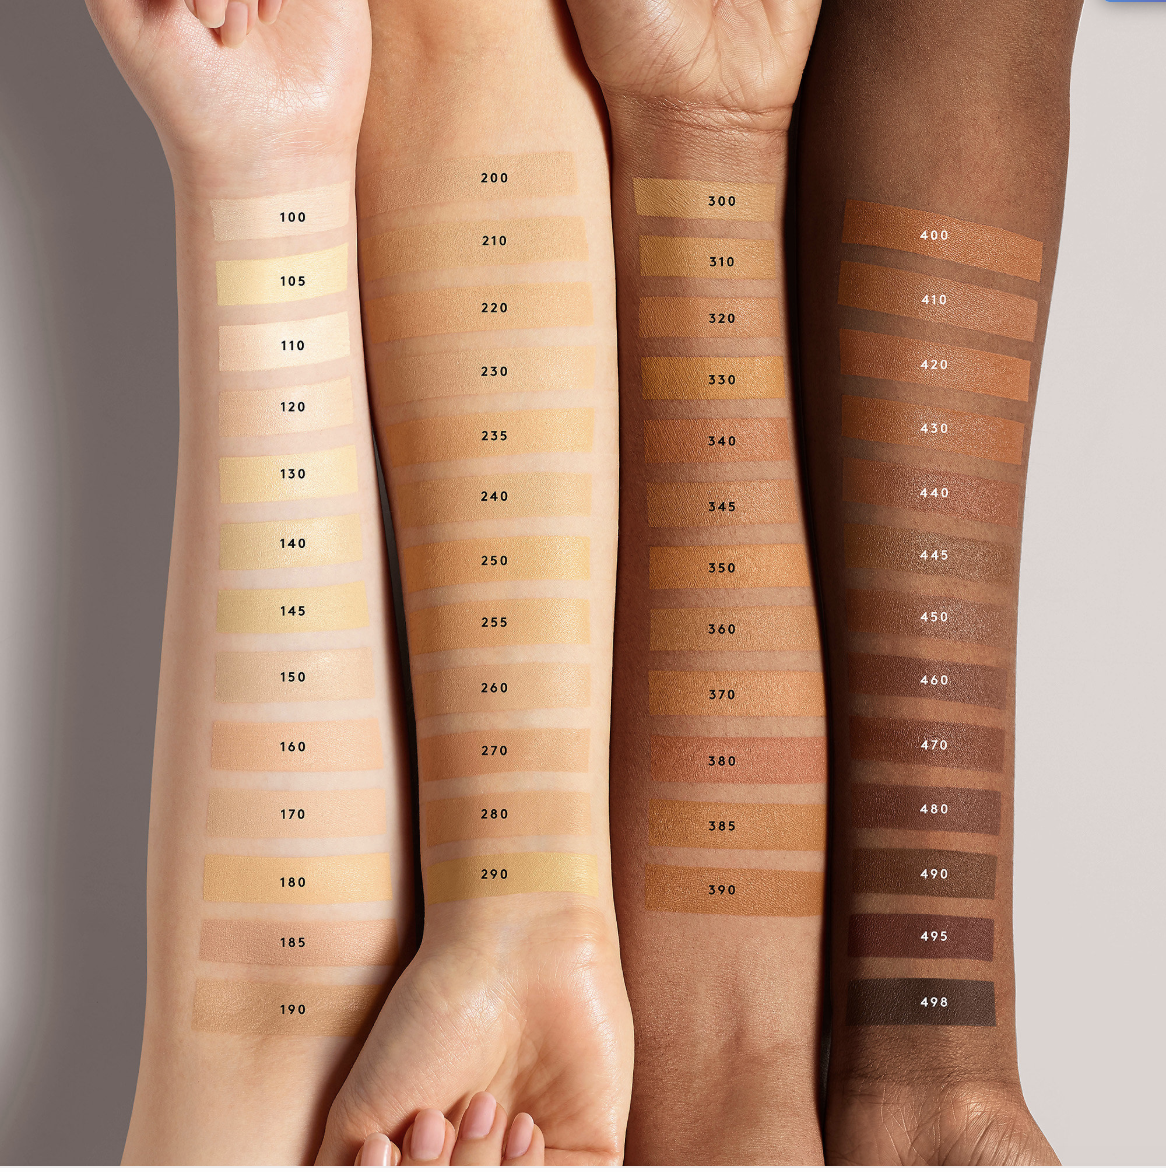 A photo of four arms showing off 50 swatches of Fenty Beauty's new Pro Filt'r Hydrating Longwear Foundation.